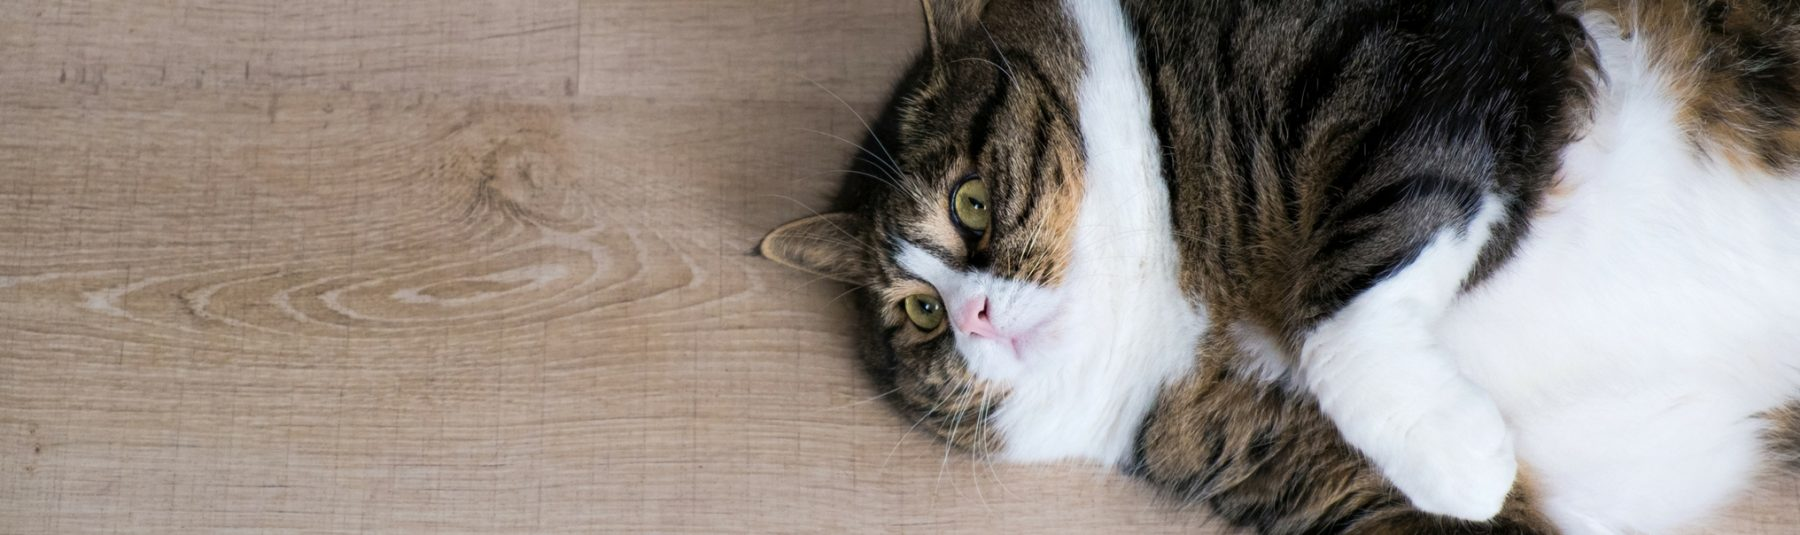 Overweight cat lying on wooden floor